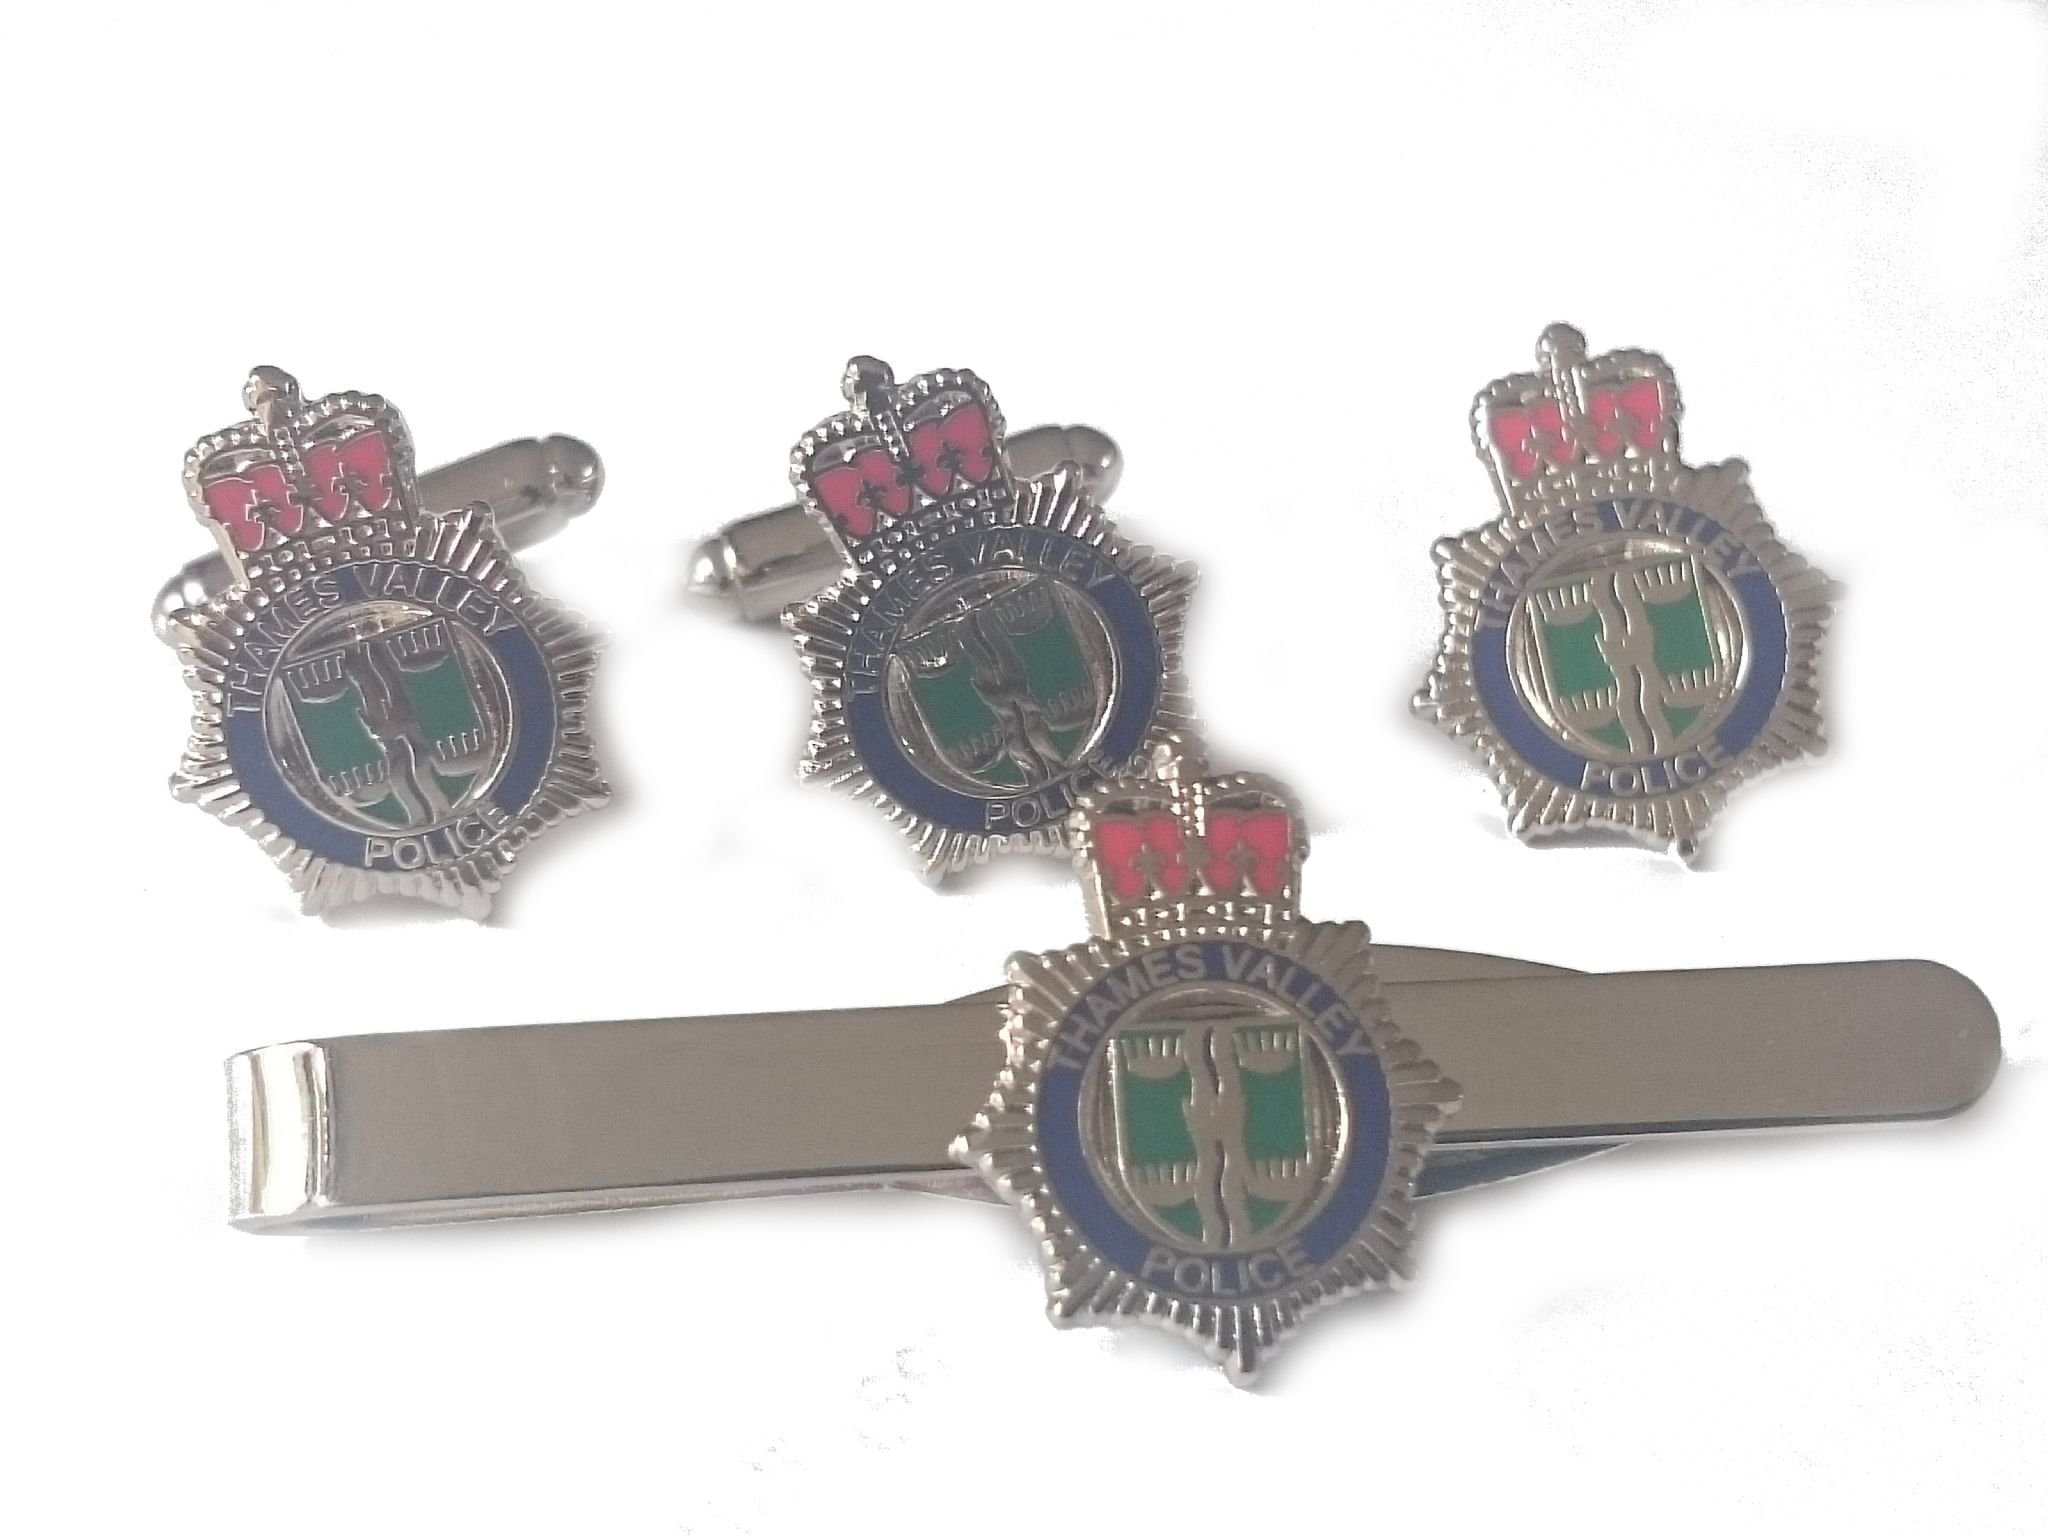 Tie Clip Military Gift Set Badge Thames Valley Police Cufflinks